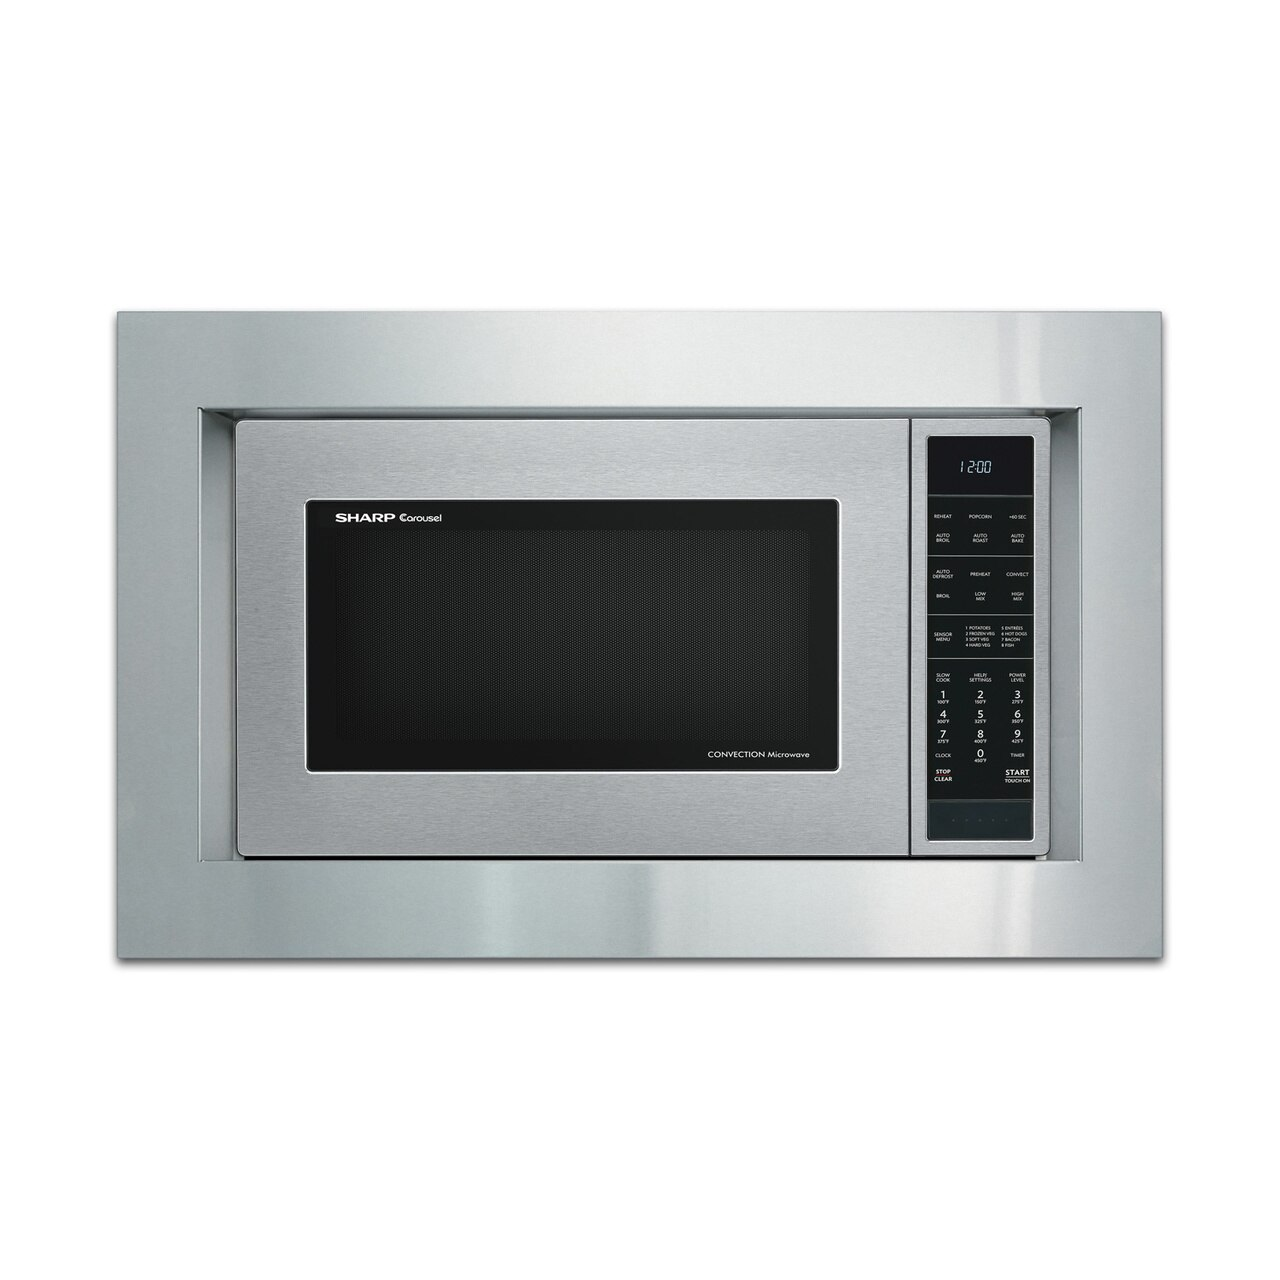 "Sharp 30"" Built-in Trim Kit (RK94S30) on SMC1585BS Microwave"